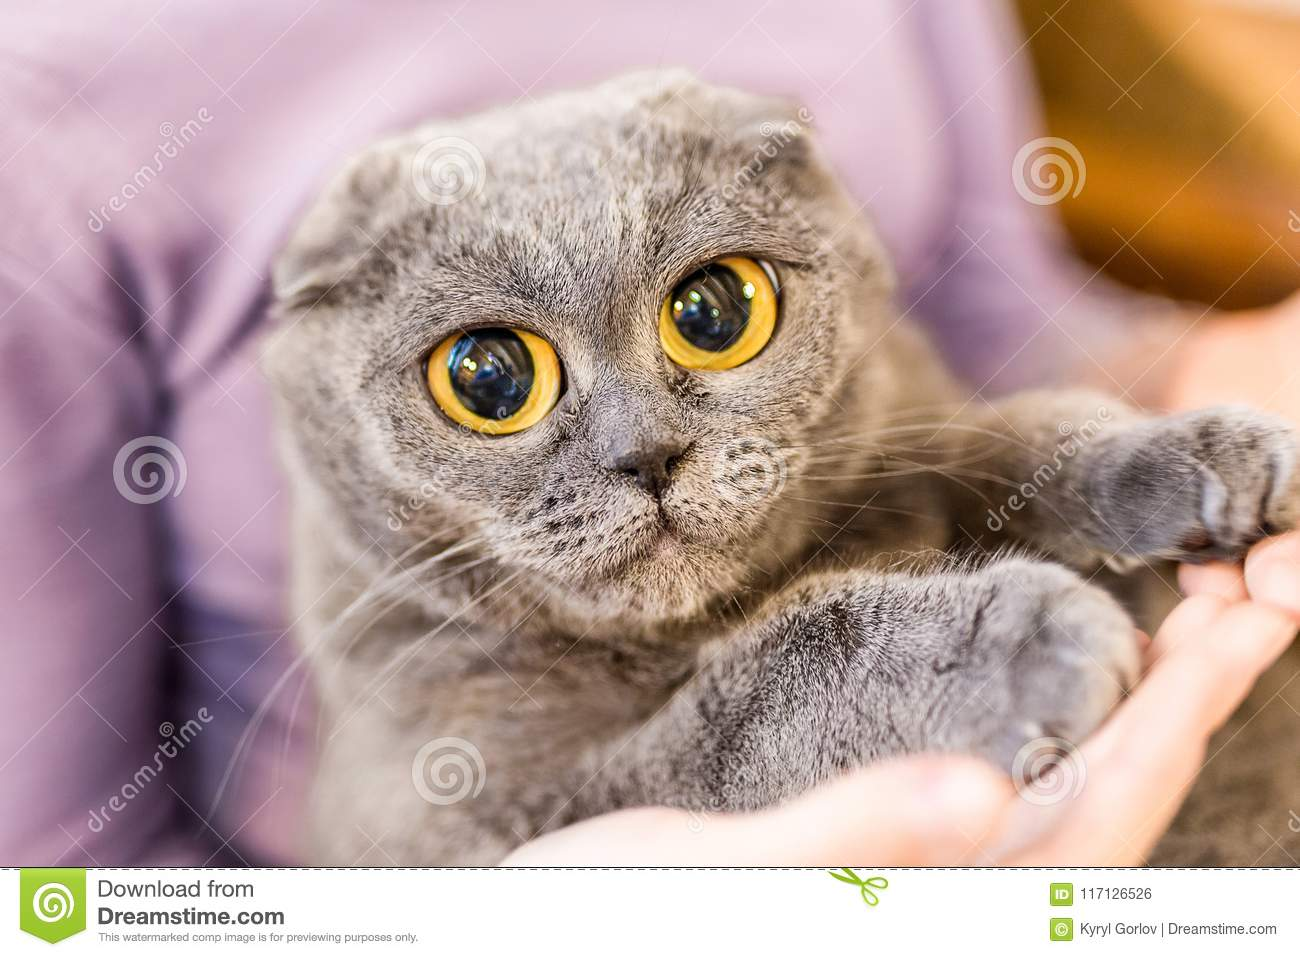 Close up portrait of grey fluffy cat with huge eyes on owner hand. Fat satisfied cat with big yellow eyes. Home pet care